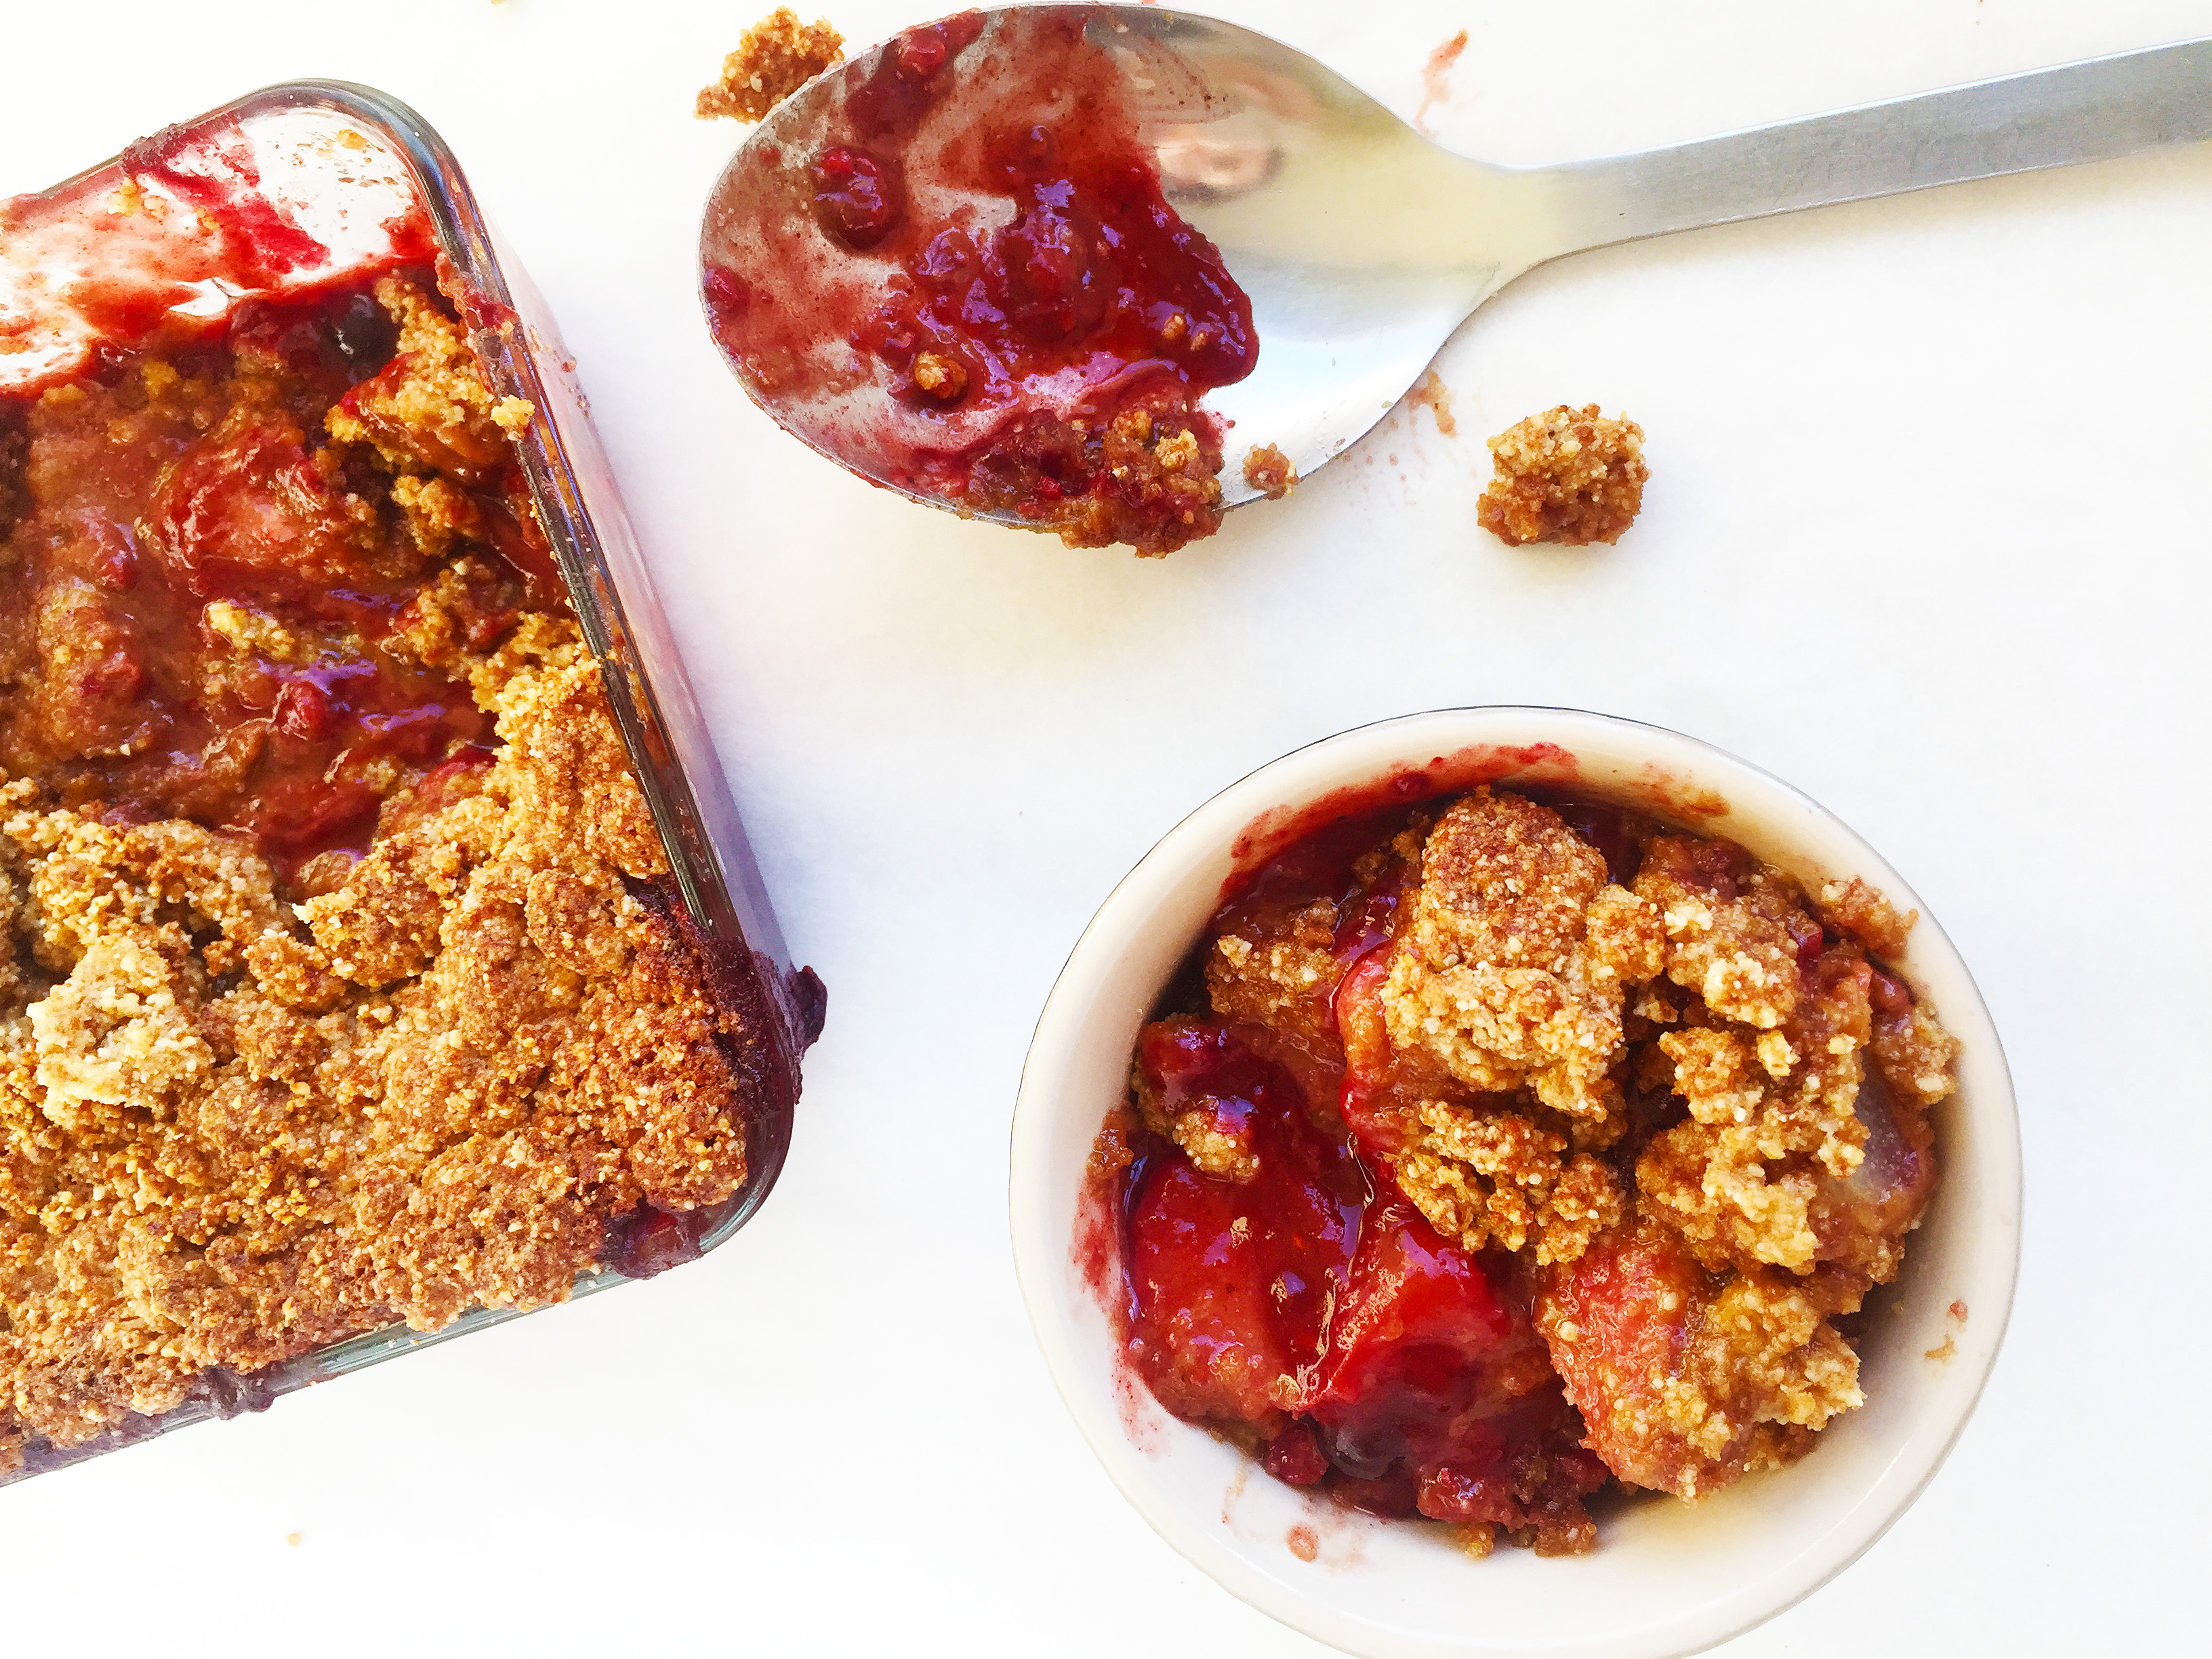 spiced-berry-and-pear-paleo-crumble-2